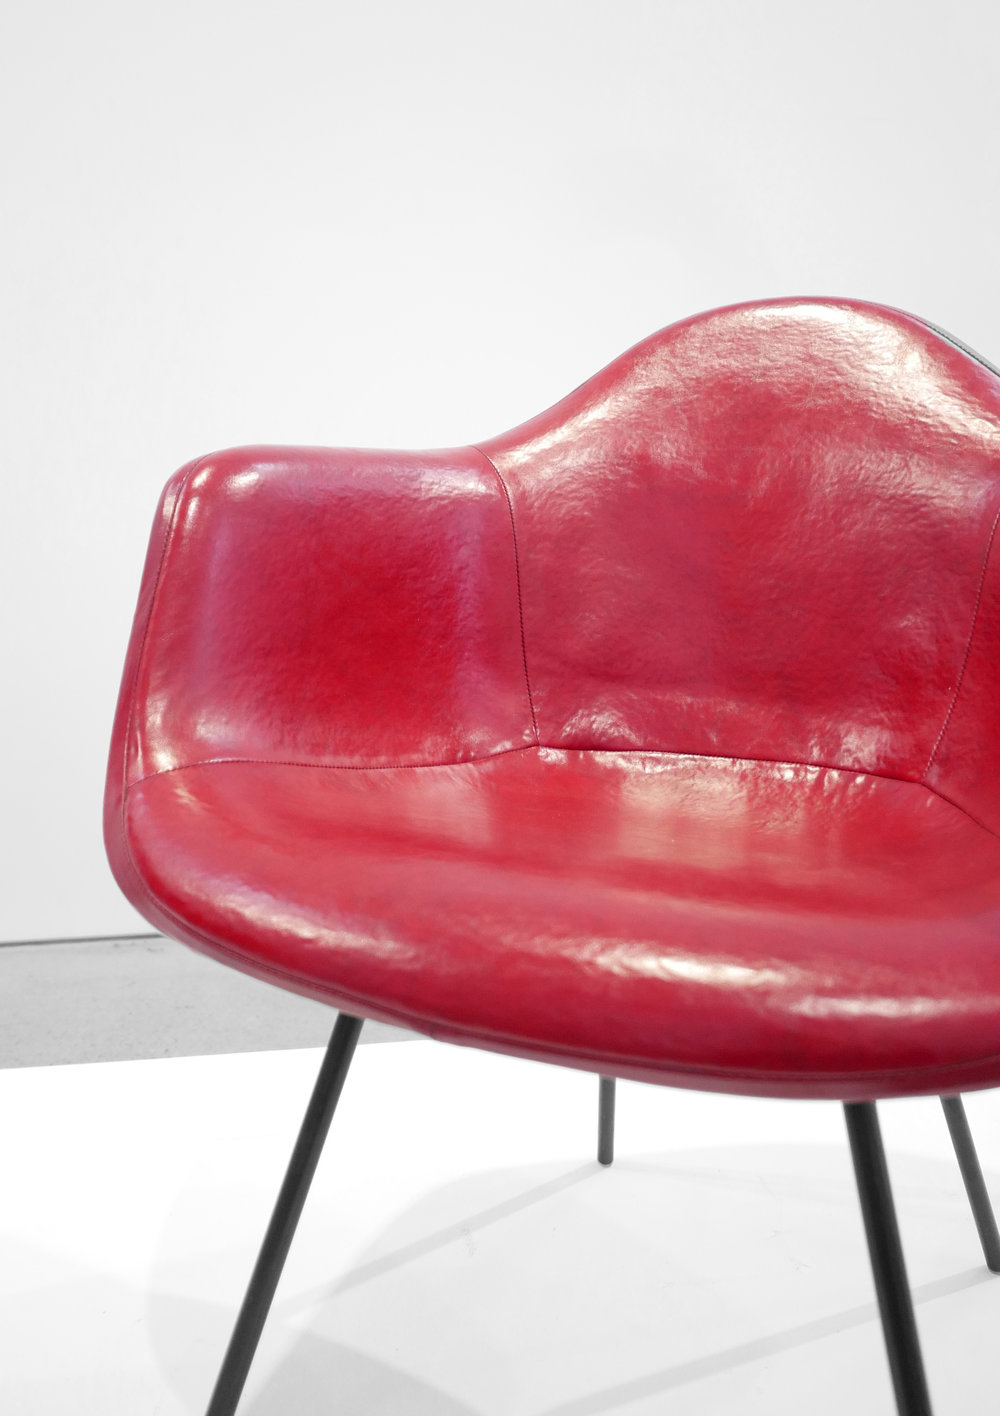 5. Ray and Charles Eames, 'DAX' Chairs, 1954, molded and lacquered fiberglass, vinyl, enameled steel, plastic, 31 x 25.5 x 25 inches.jpg